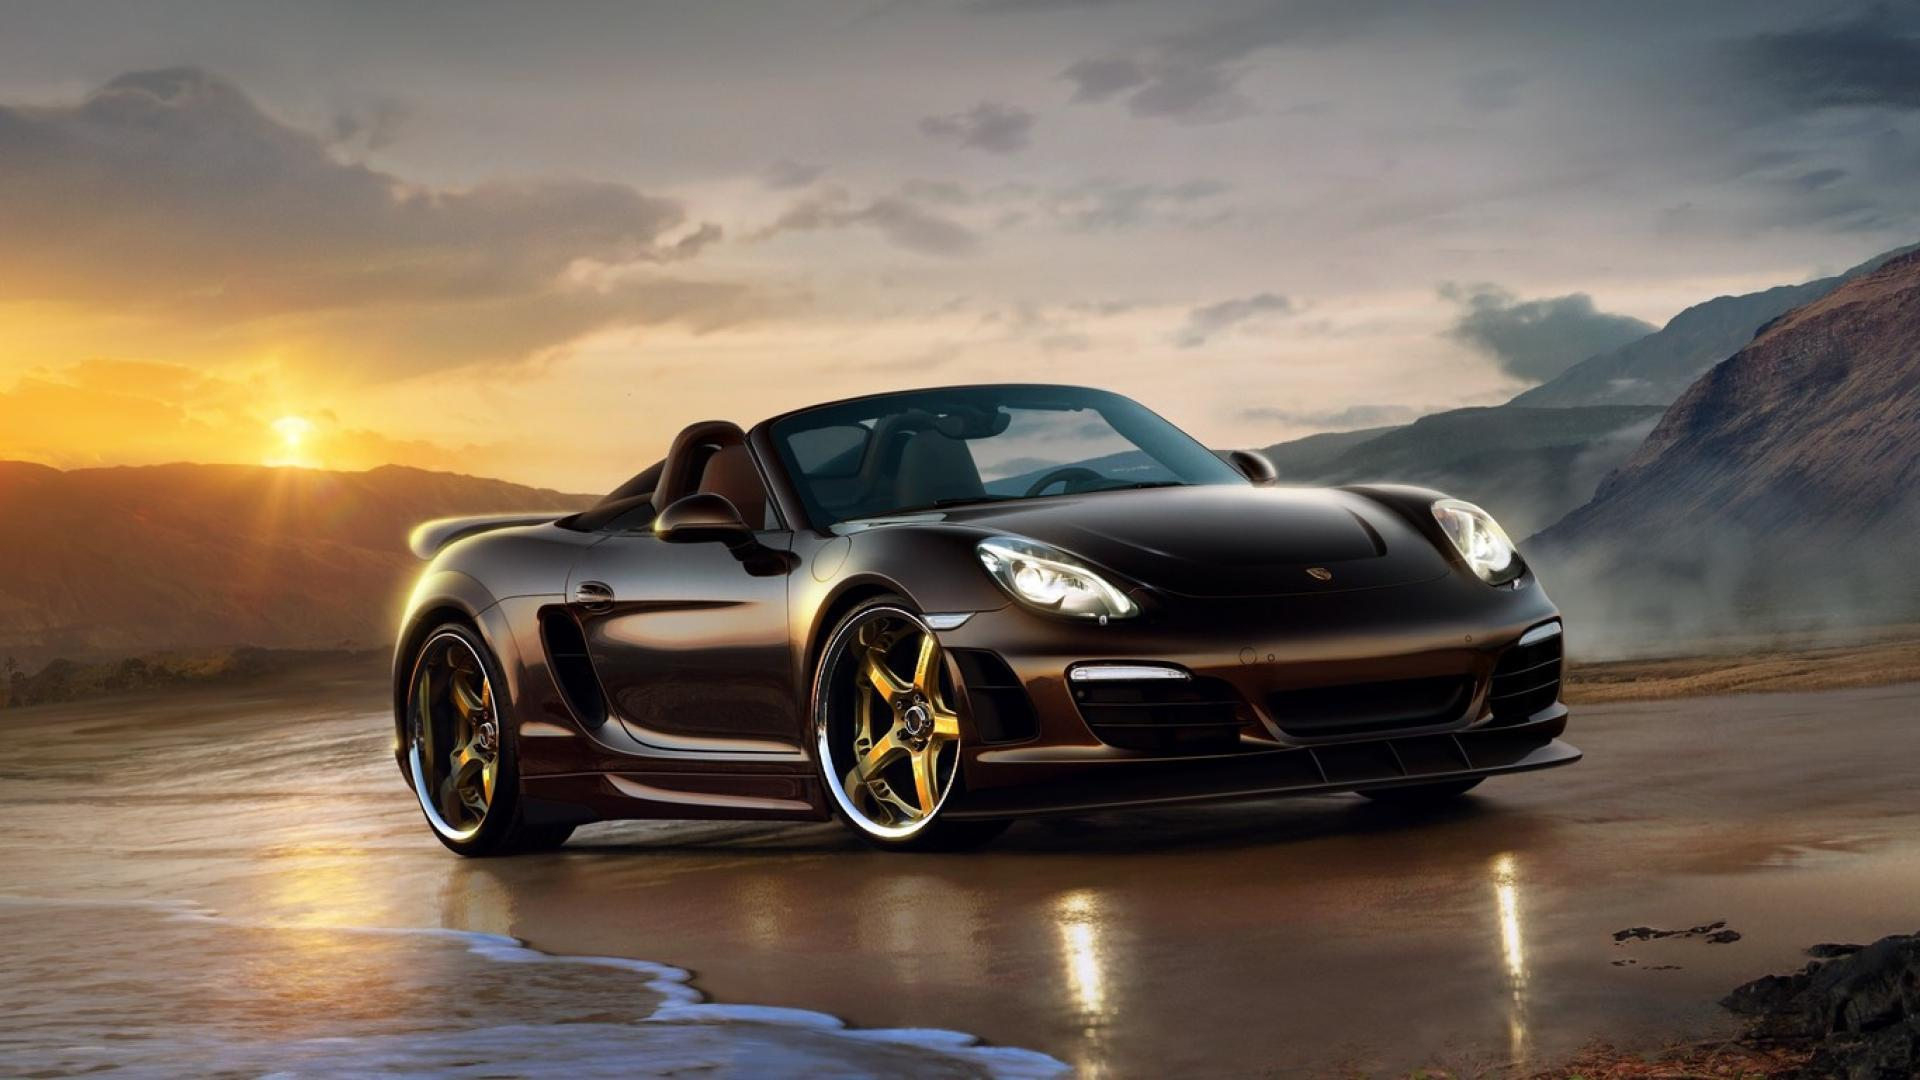 Porsche Wallpapers And Hd Backgrounds Free Download On Picgaga